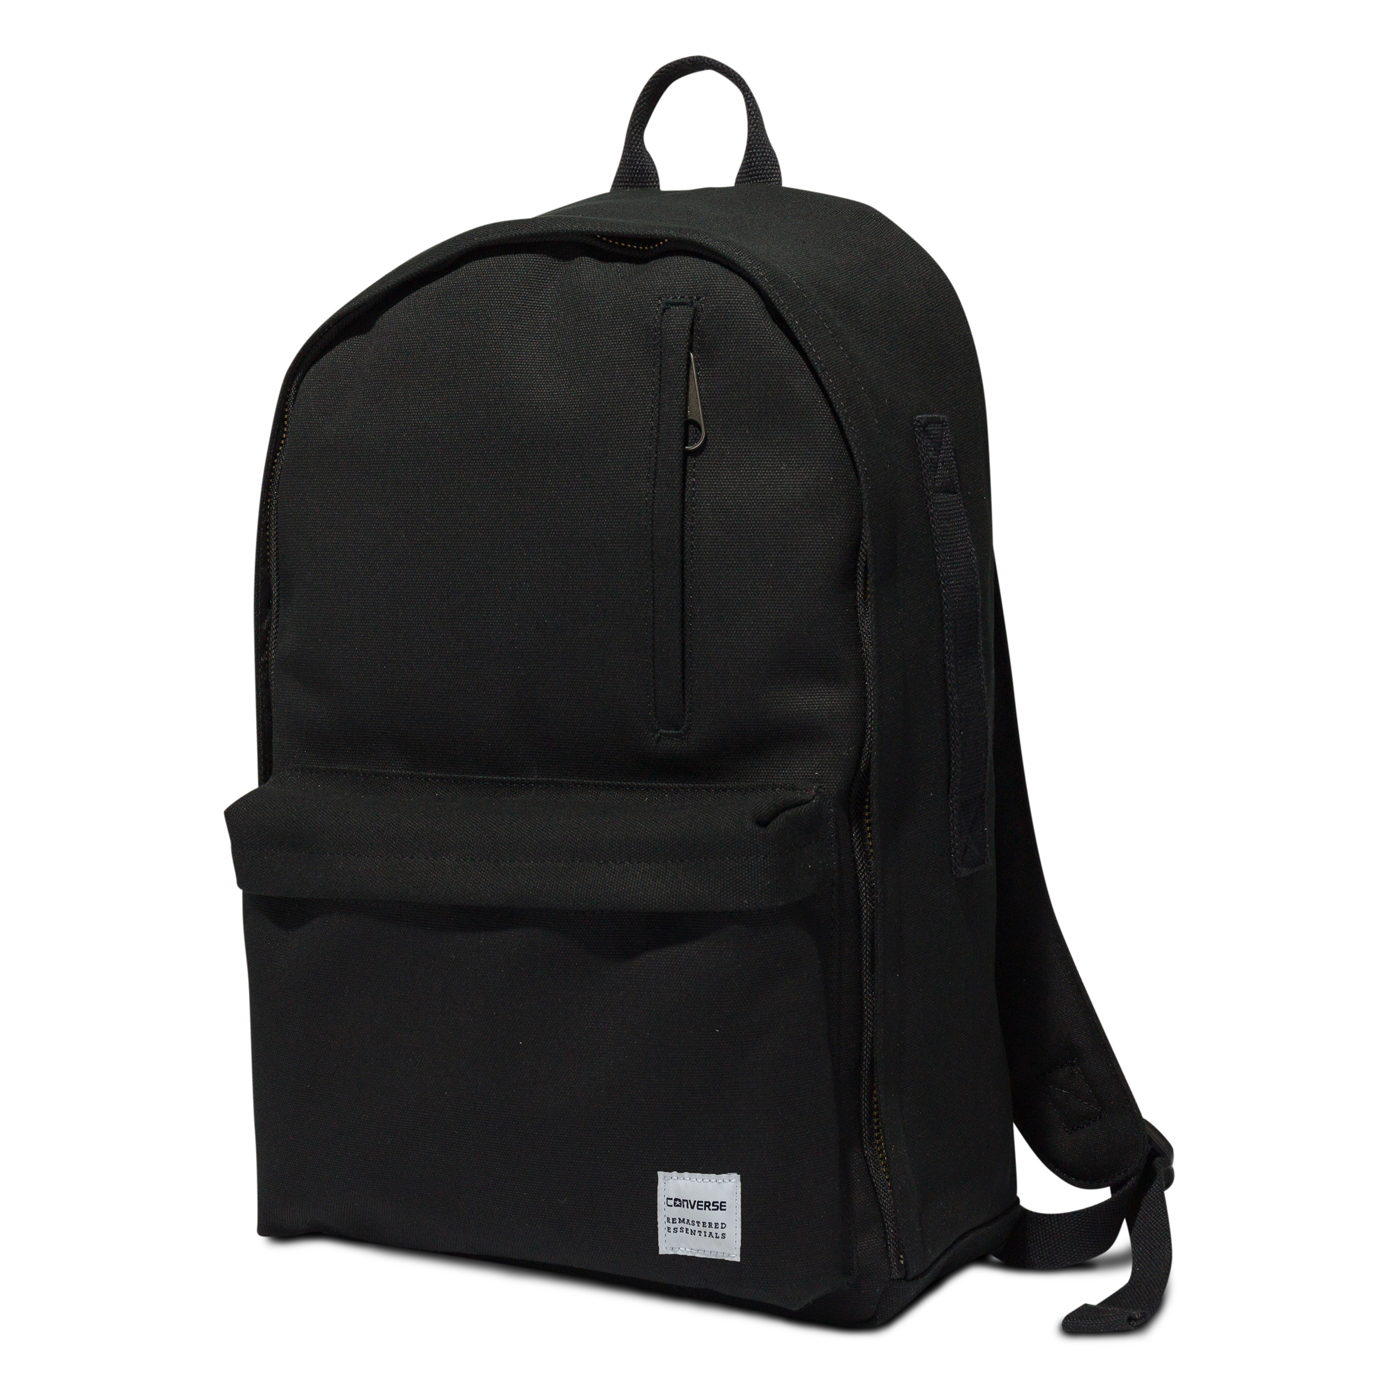 Converse_Essential Backpack_10001399-A01_329 pln